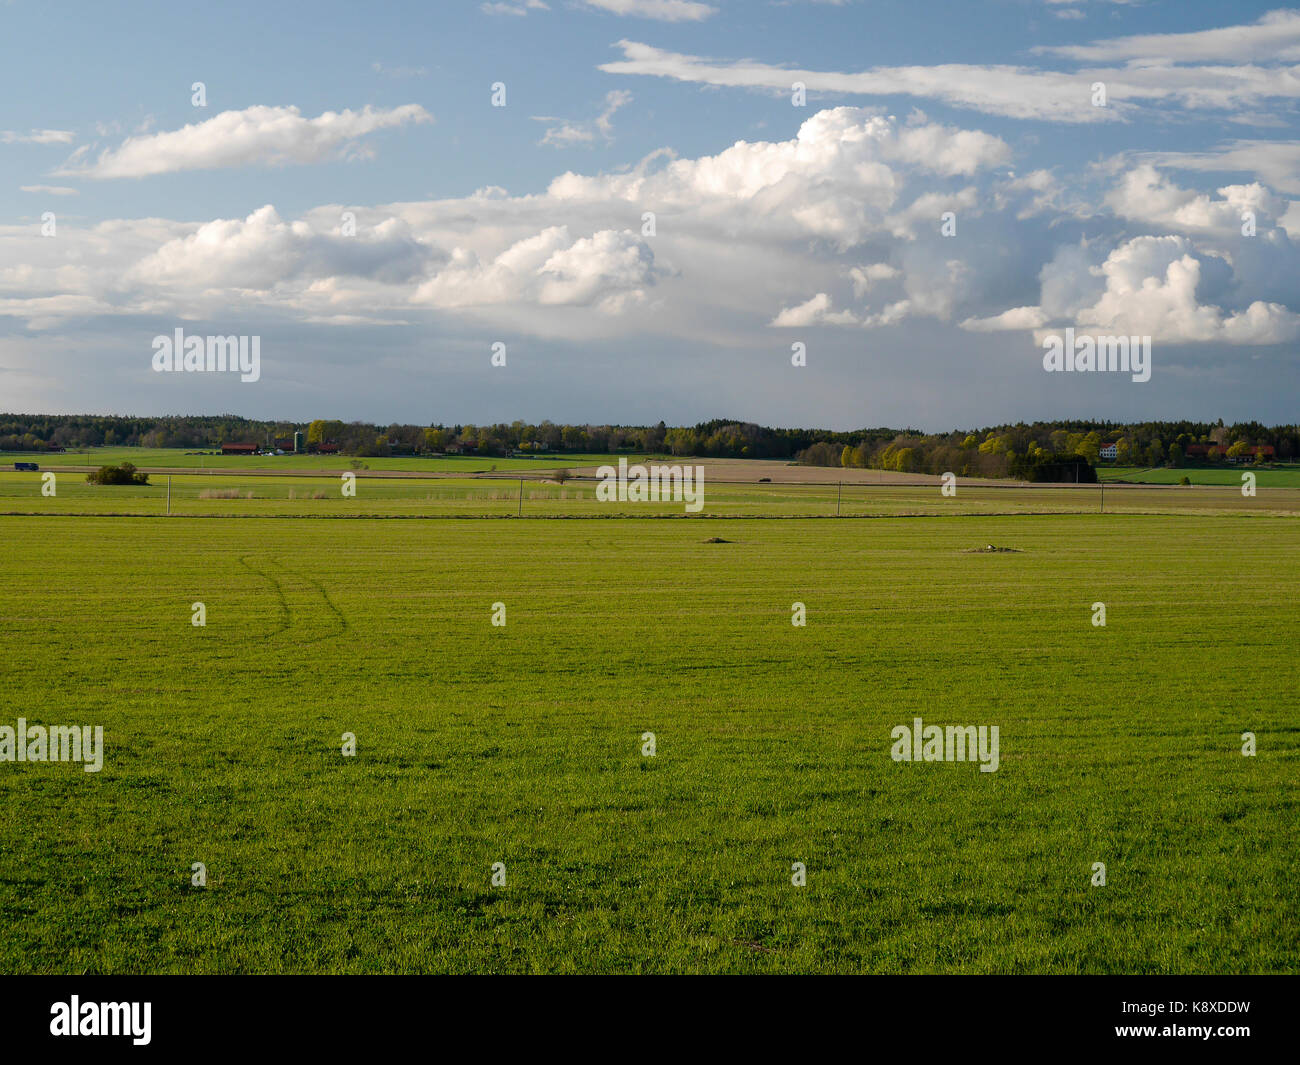 Green grass, blue skyes and some summer Clouds outside of Knivsta, South of Uppsala in Sweden. - Stock Image